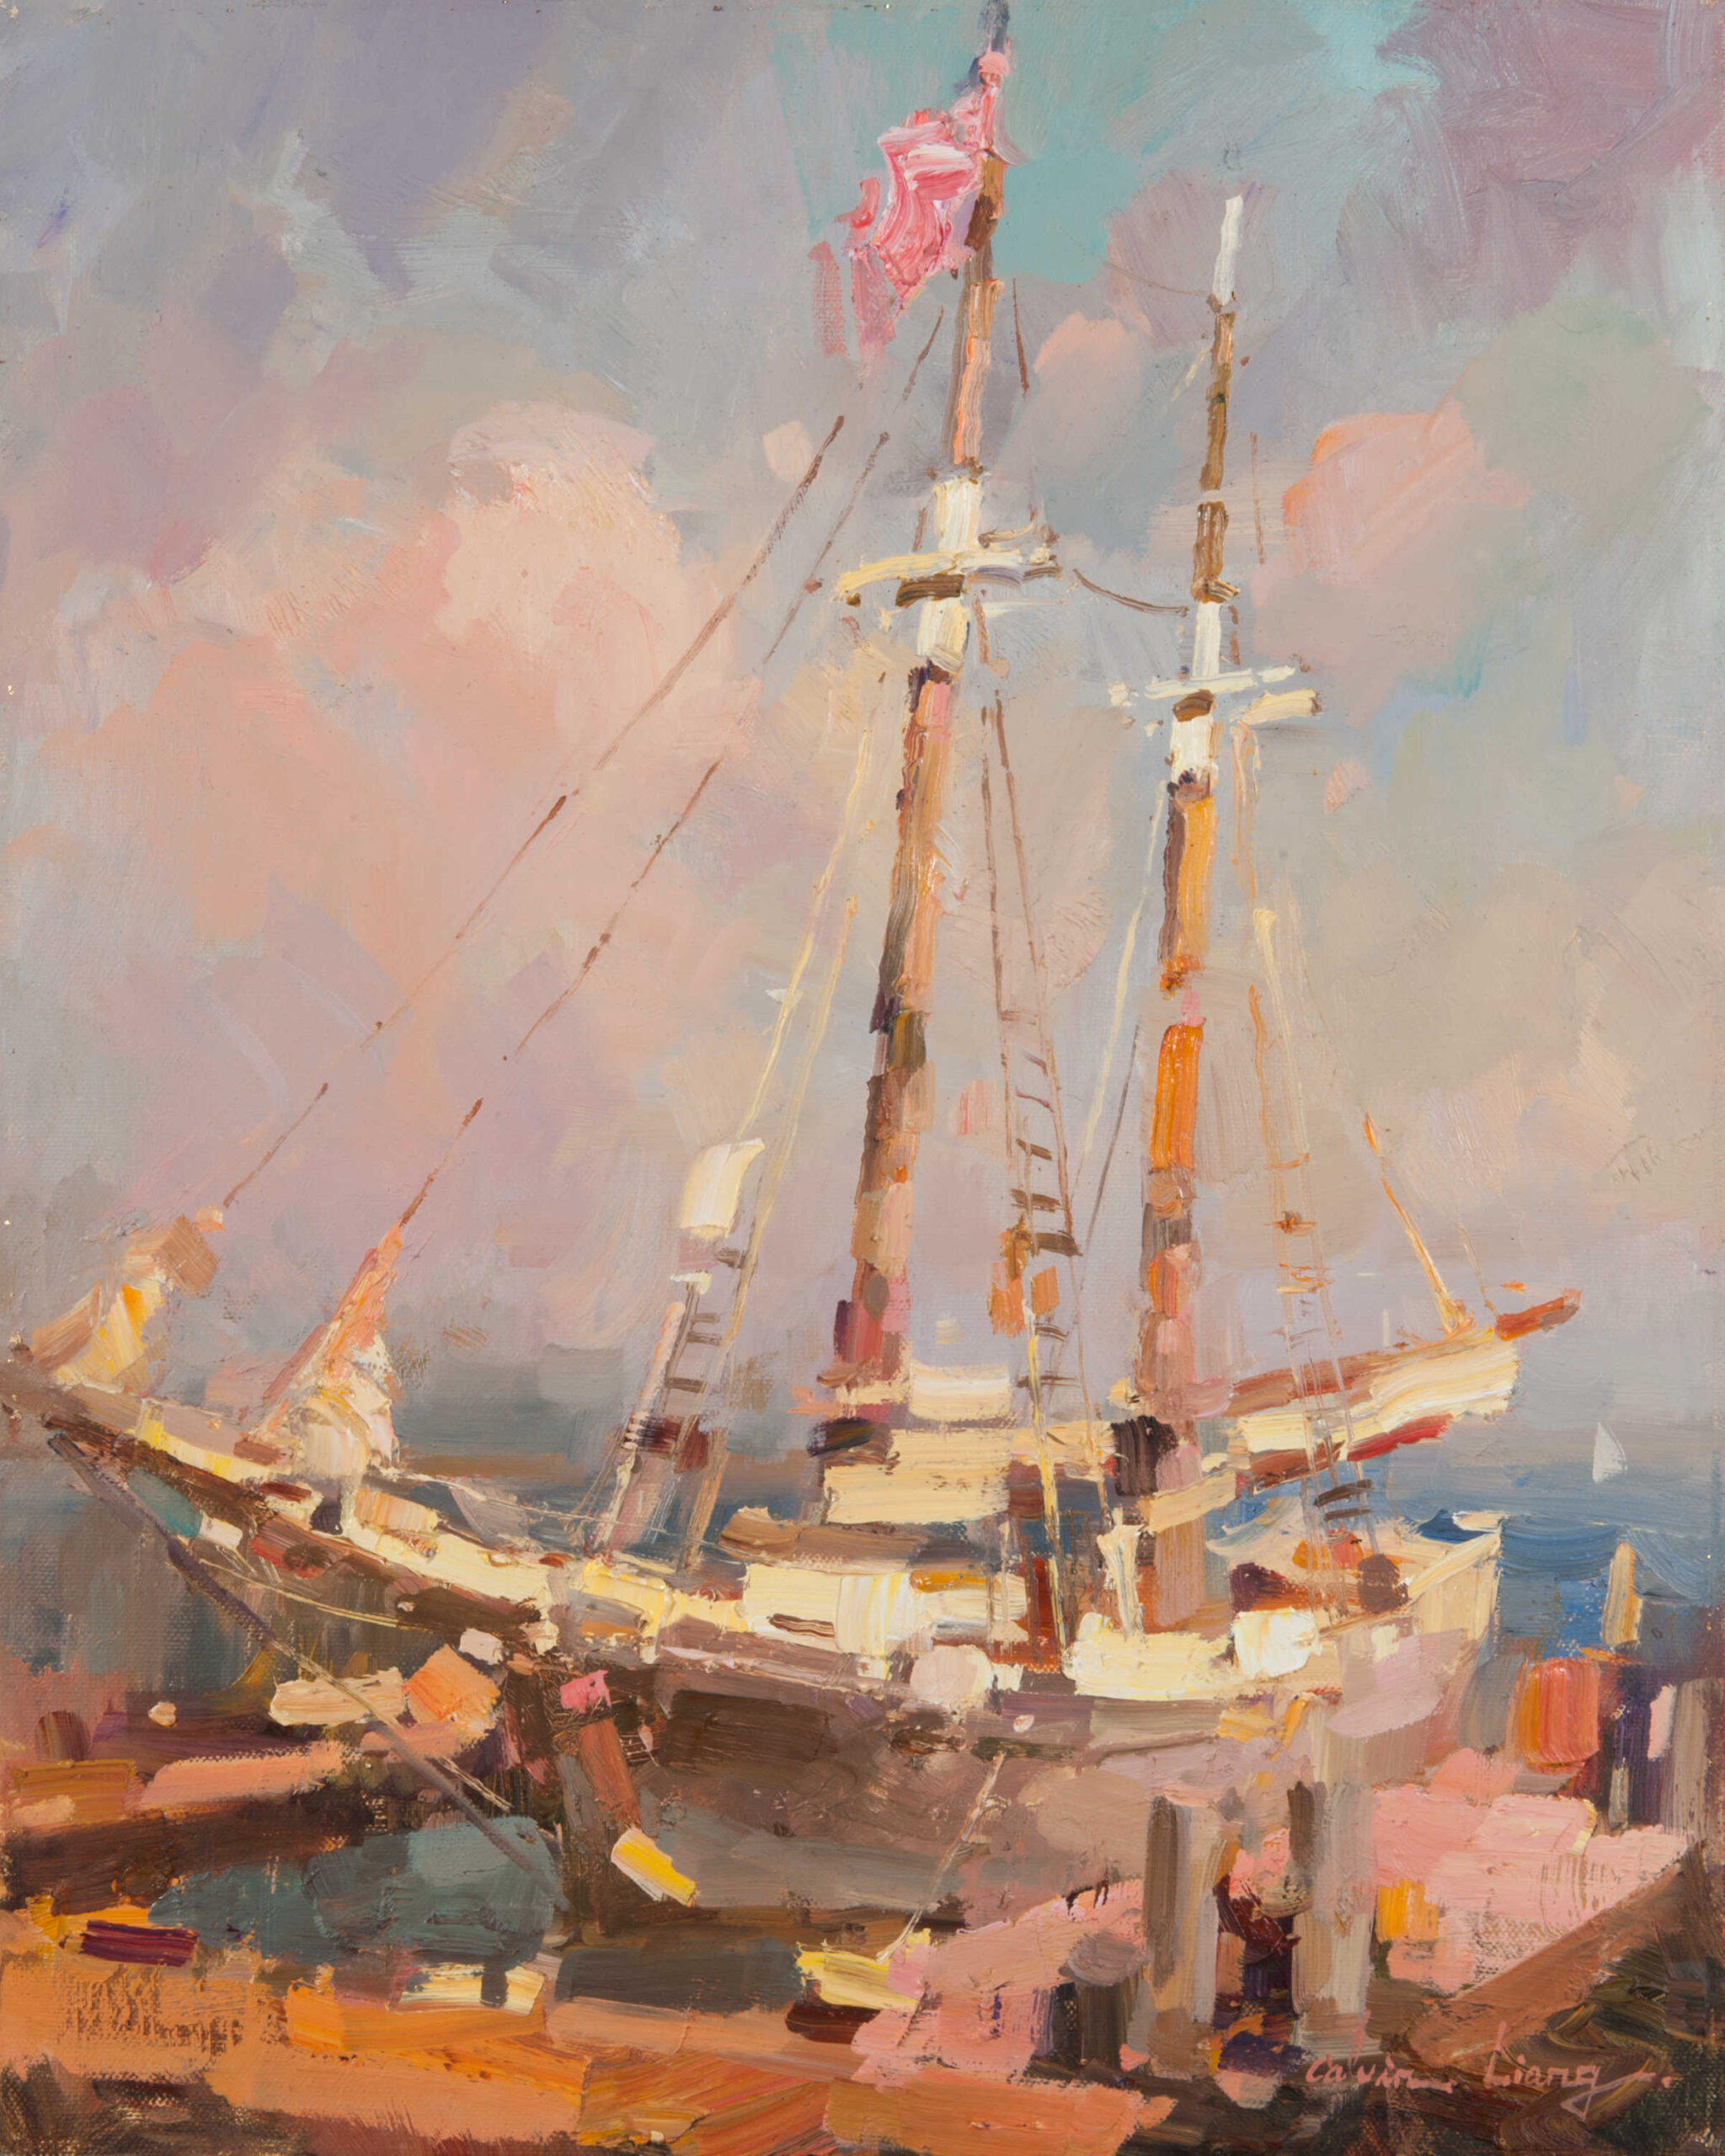 Laguna Plein Air Invitational Calvin Liang